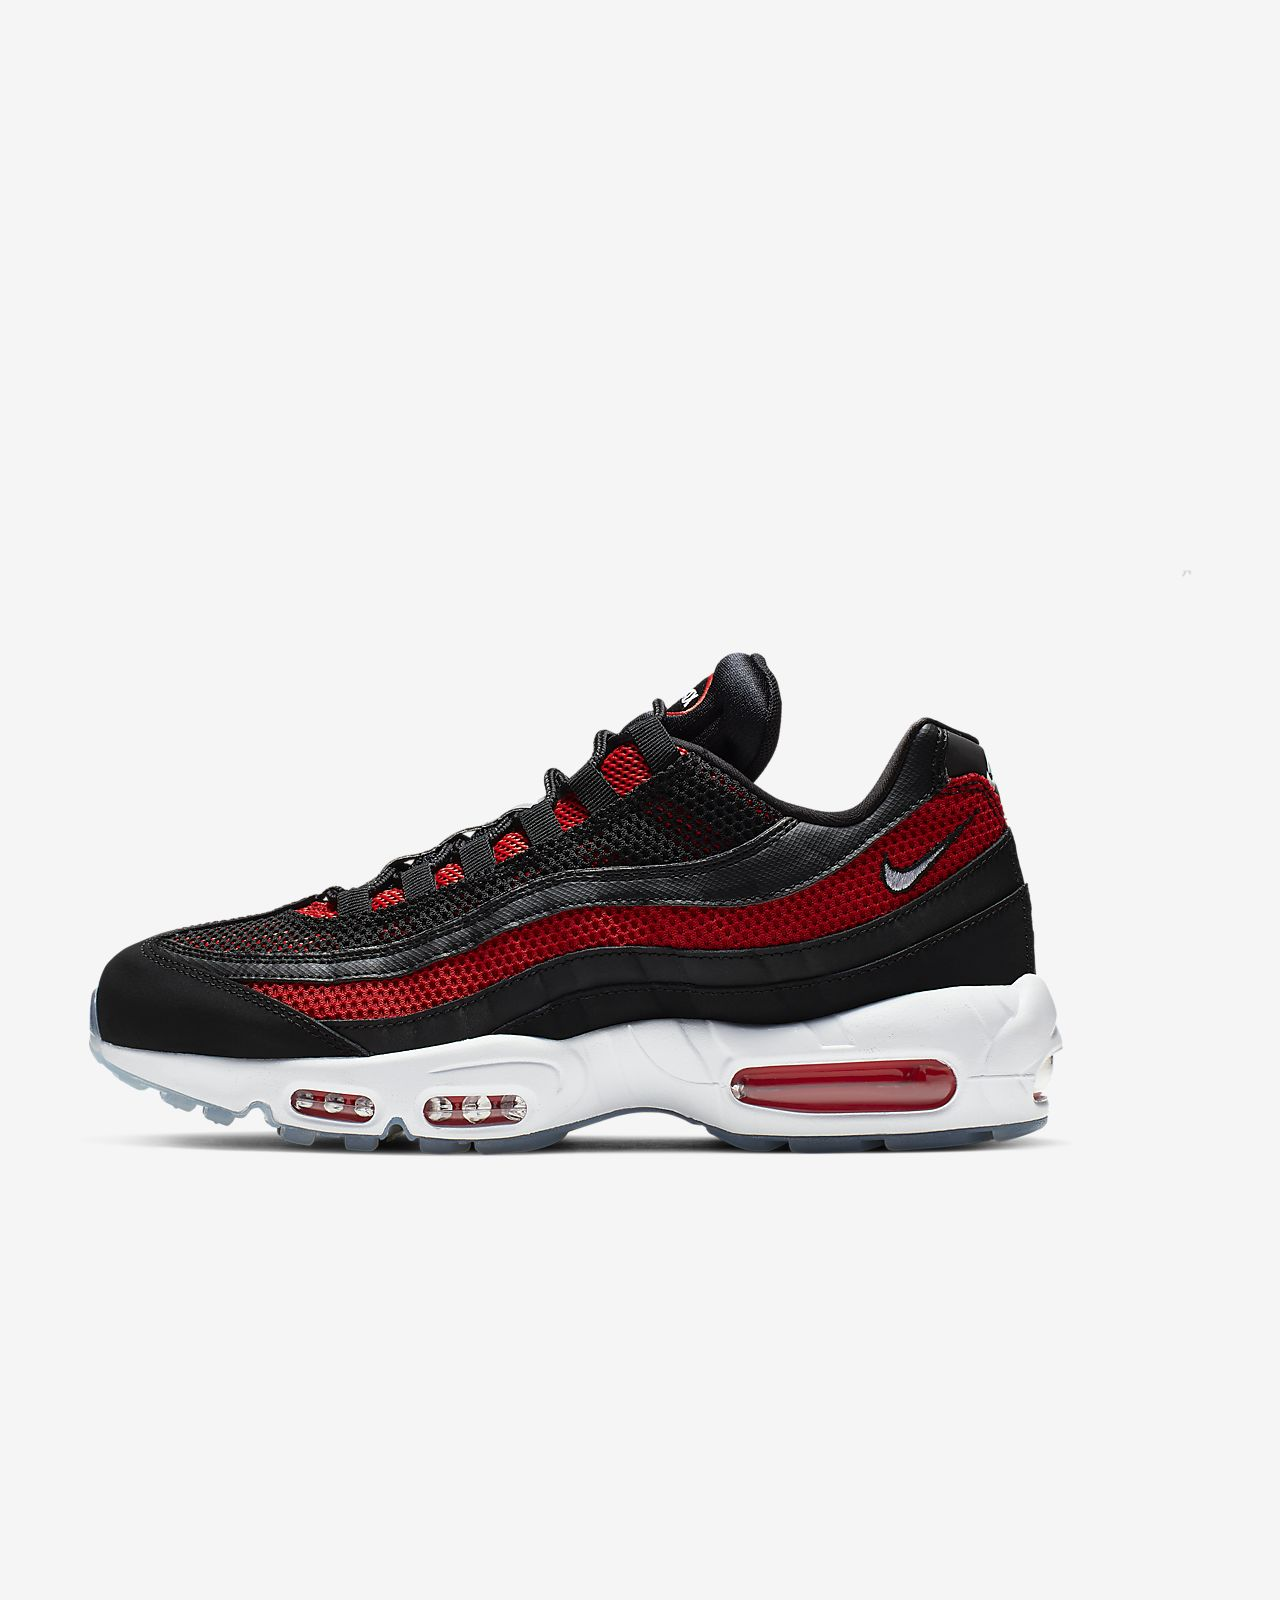 online retailer 8a62e 28765 ... Nike Air Max 95 Essential Men s Shoe